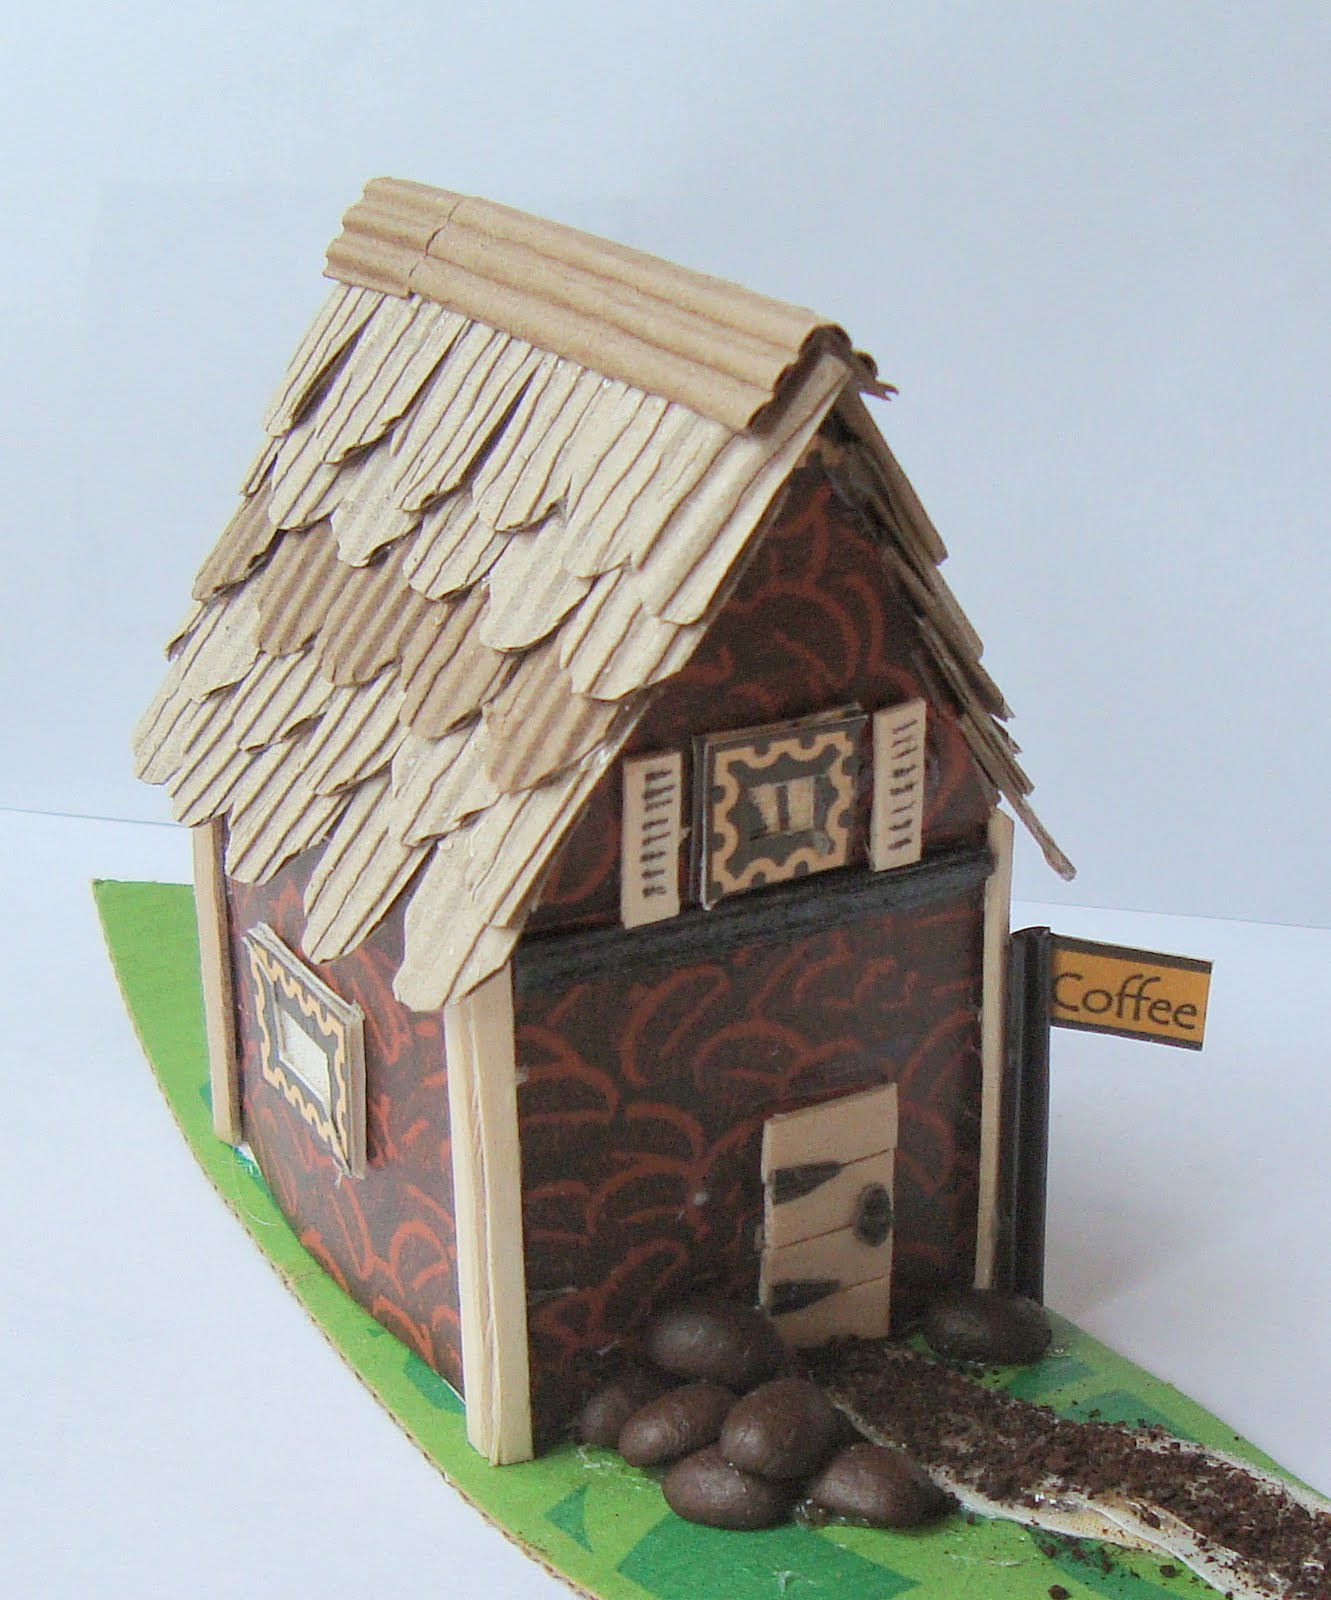 3D Paper House Patterns http://printkat.blogspot.com/2011/08/tiny-3d-house.html